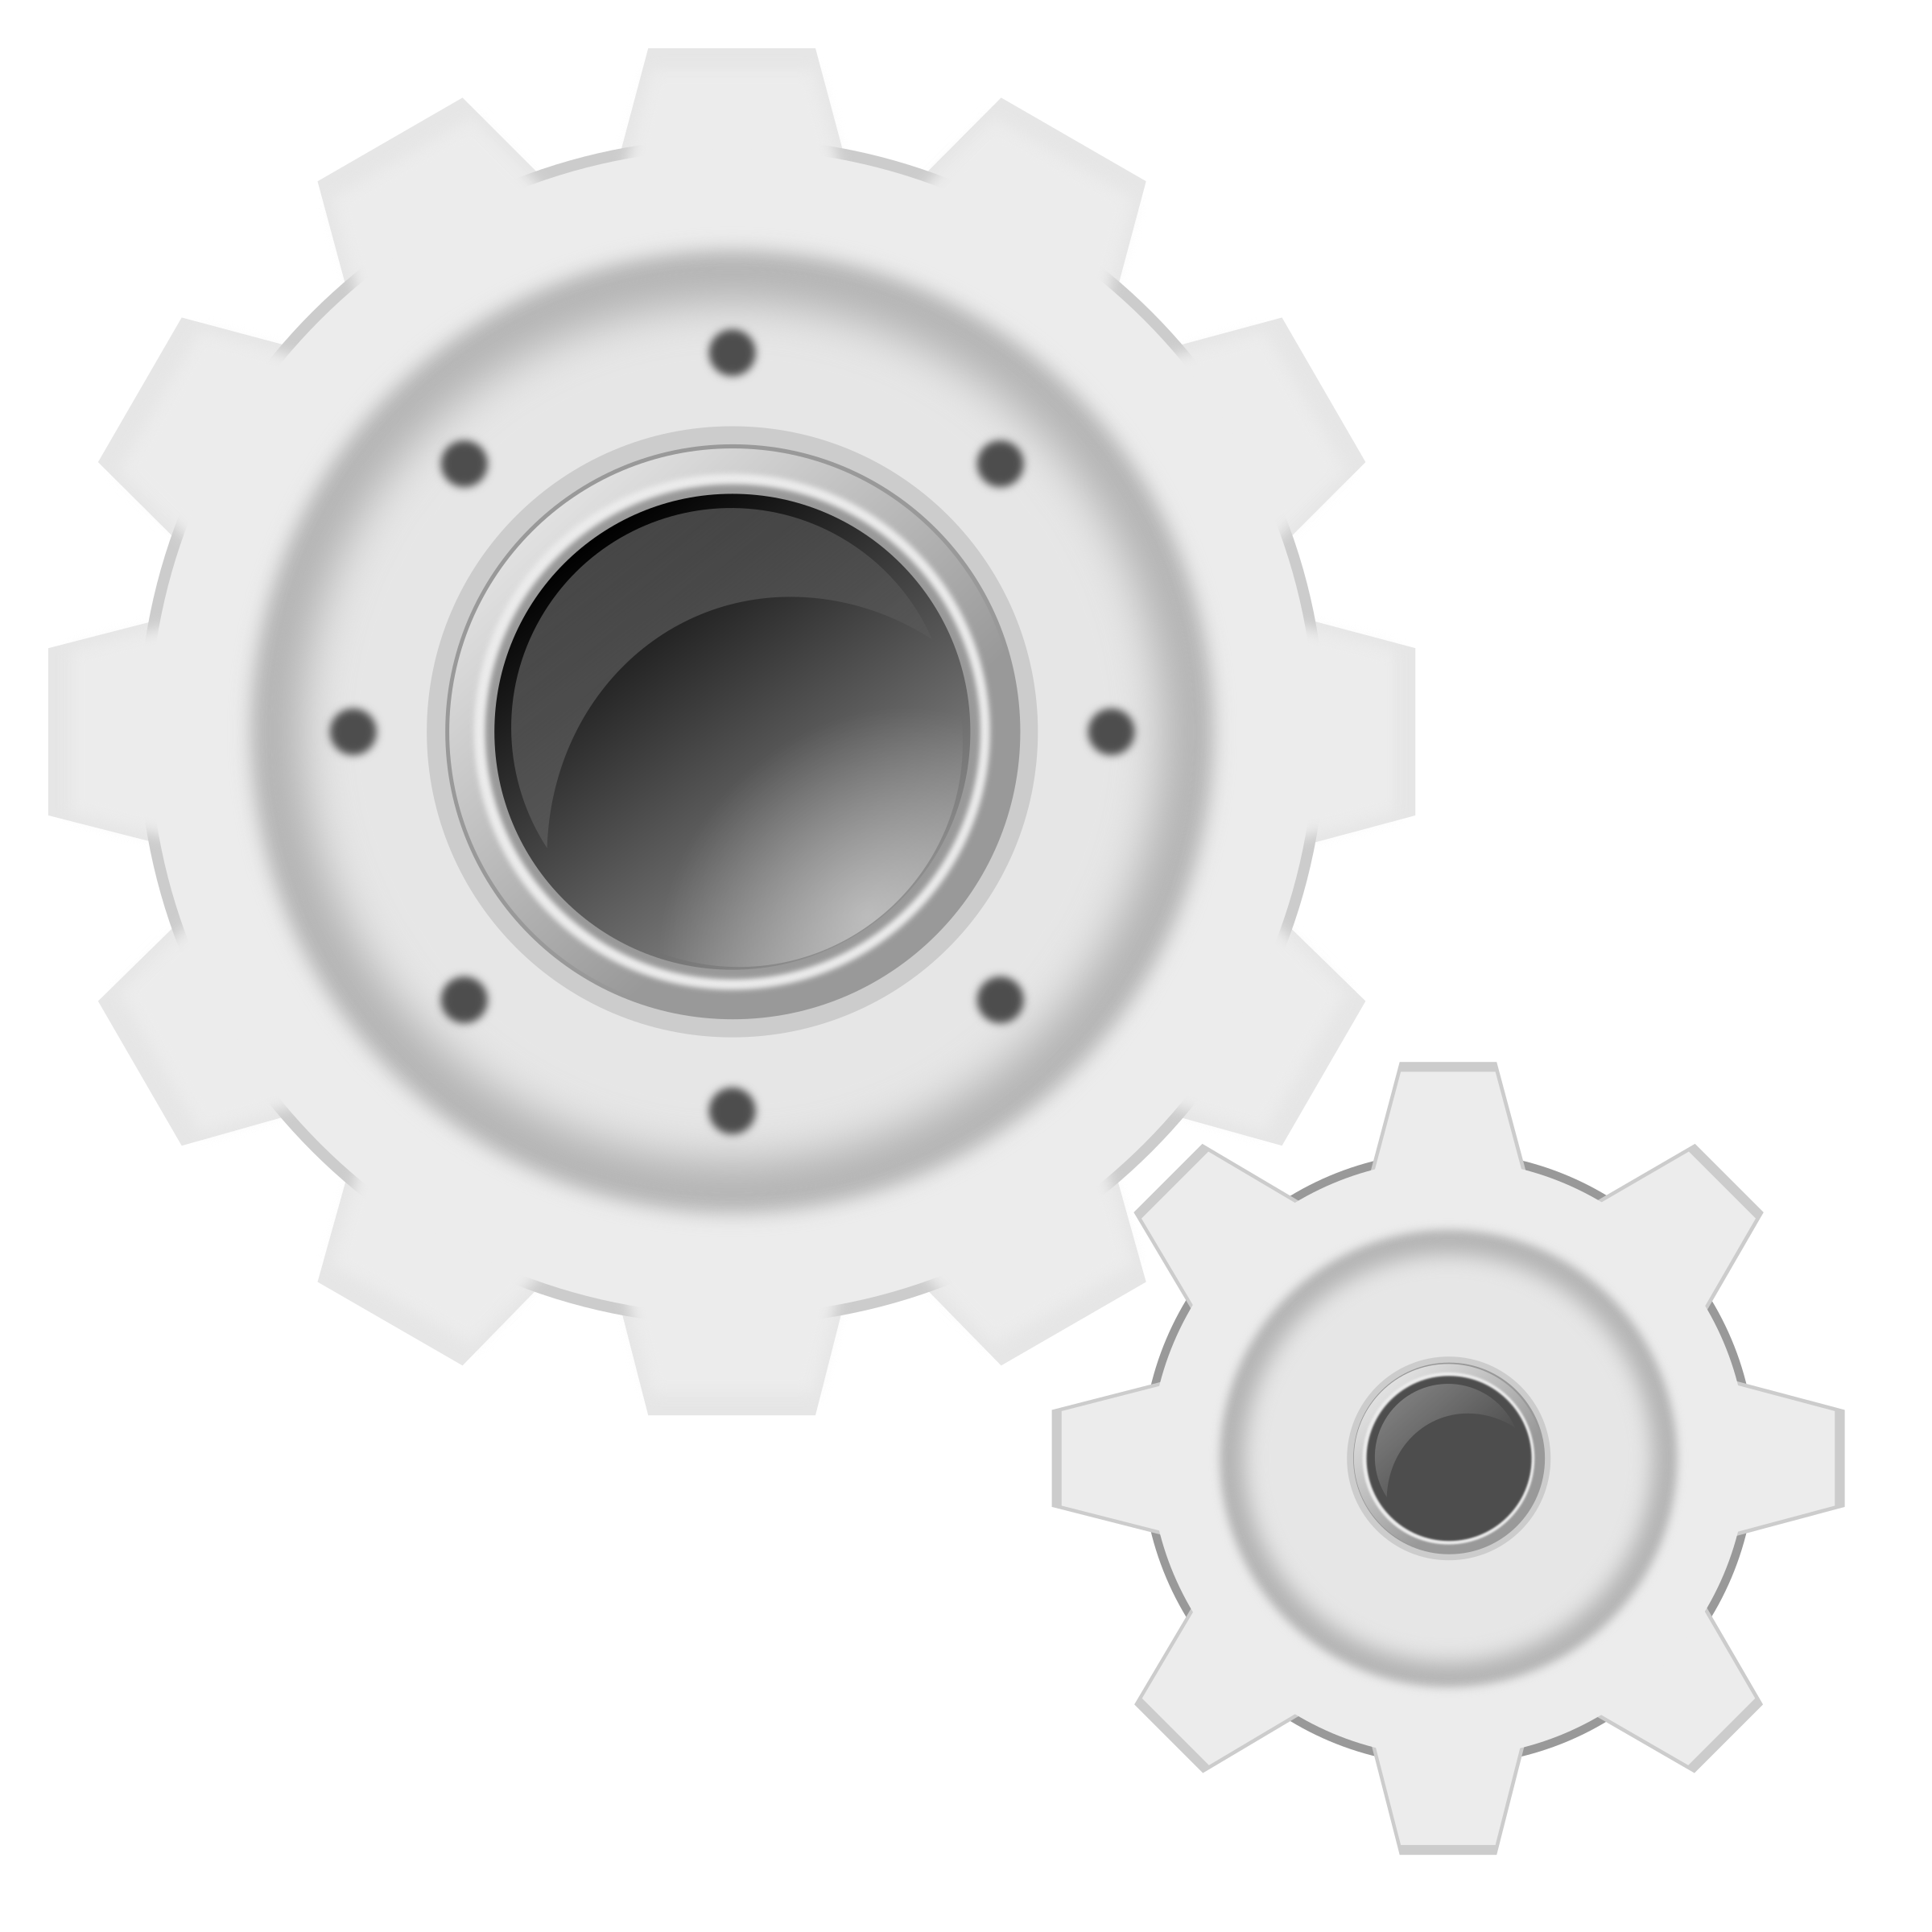 Gear clipart automotive tool. White gears big image